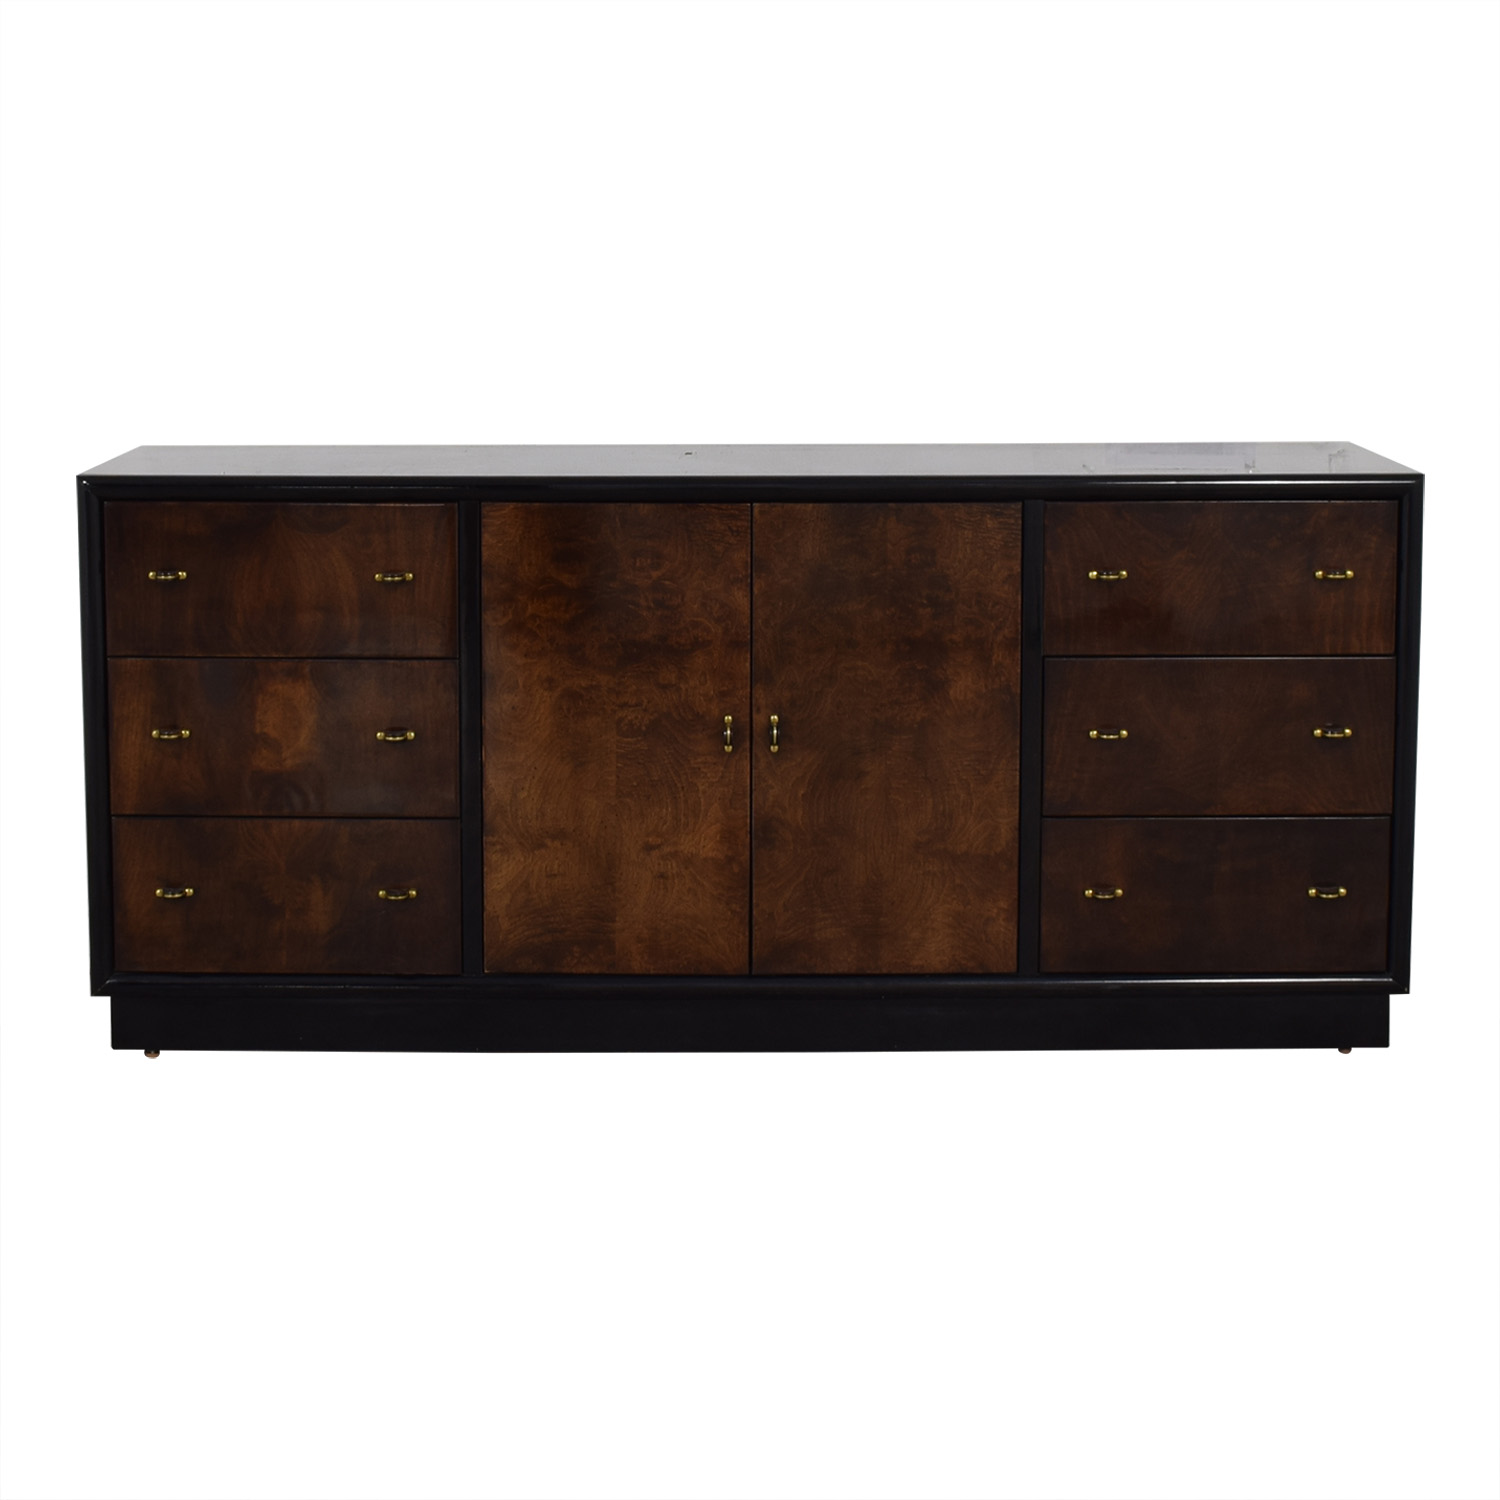 Henredon Henredon Six-Drawer Wood Buffet nj